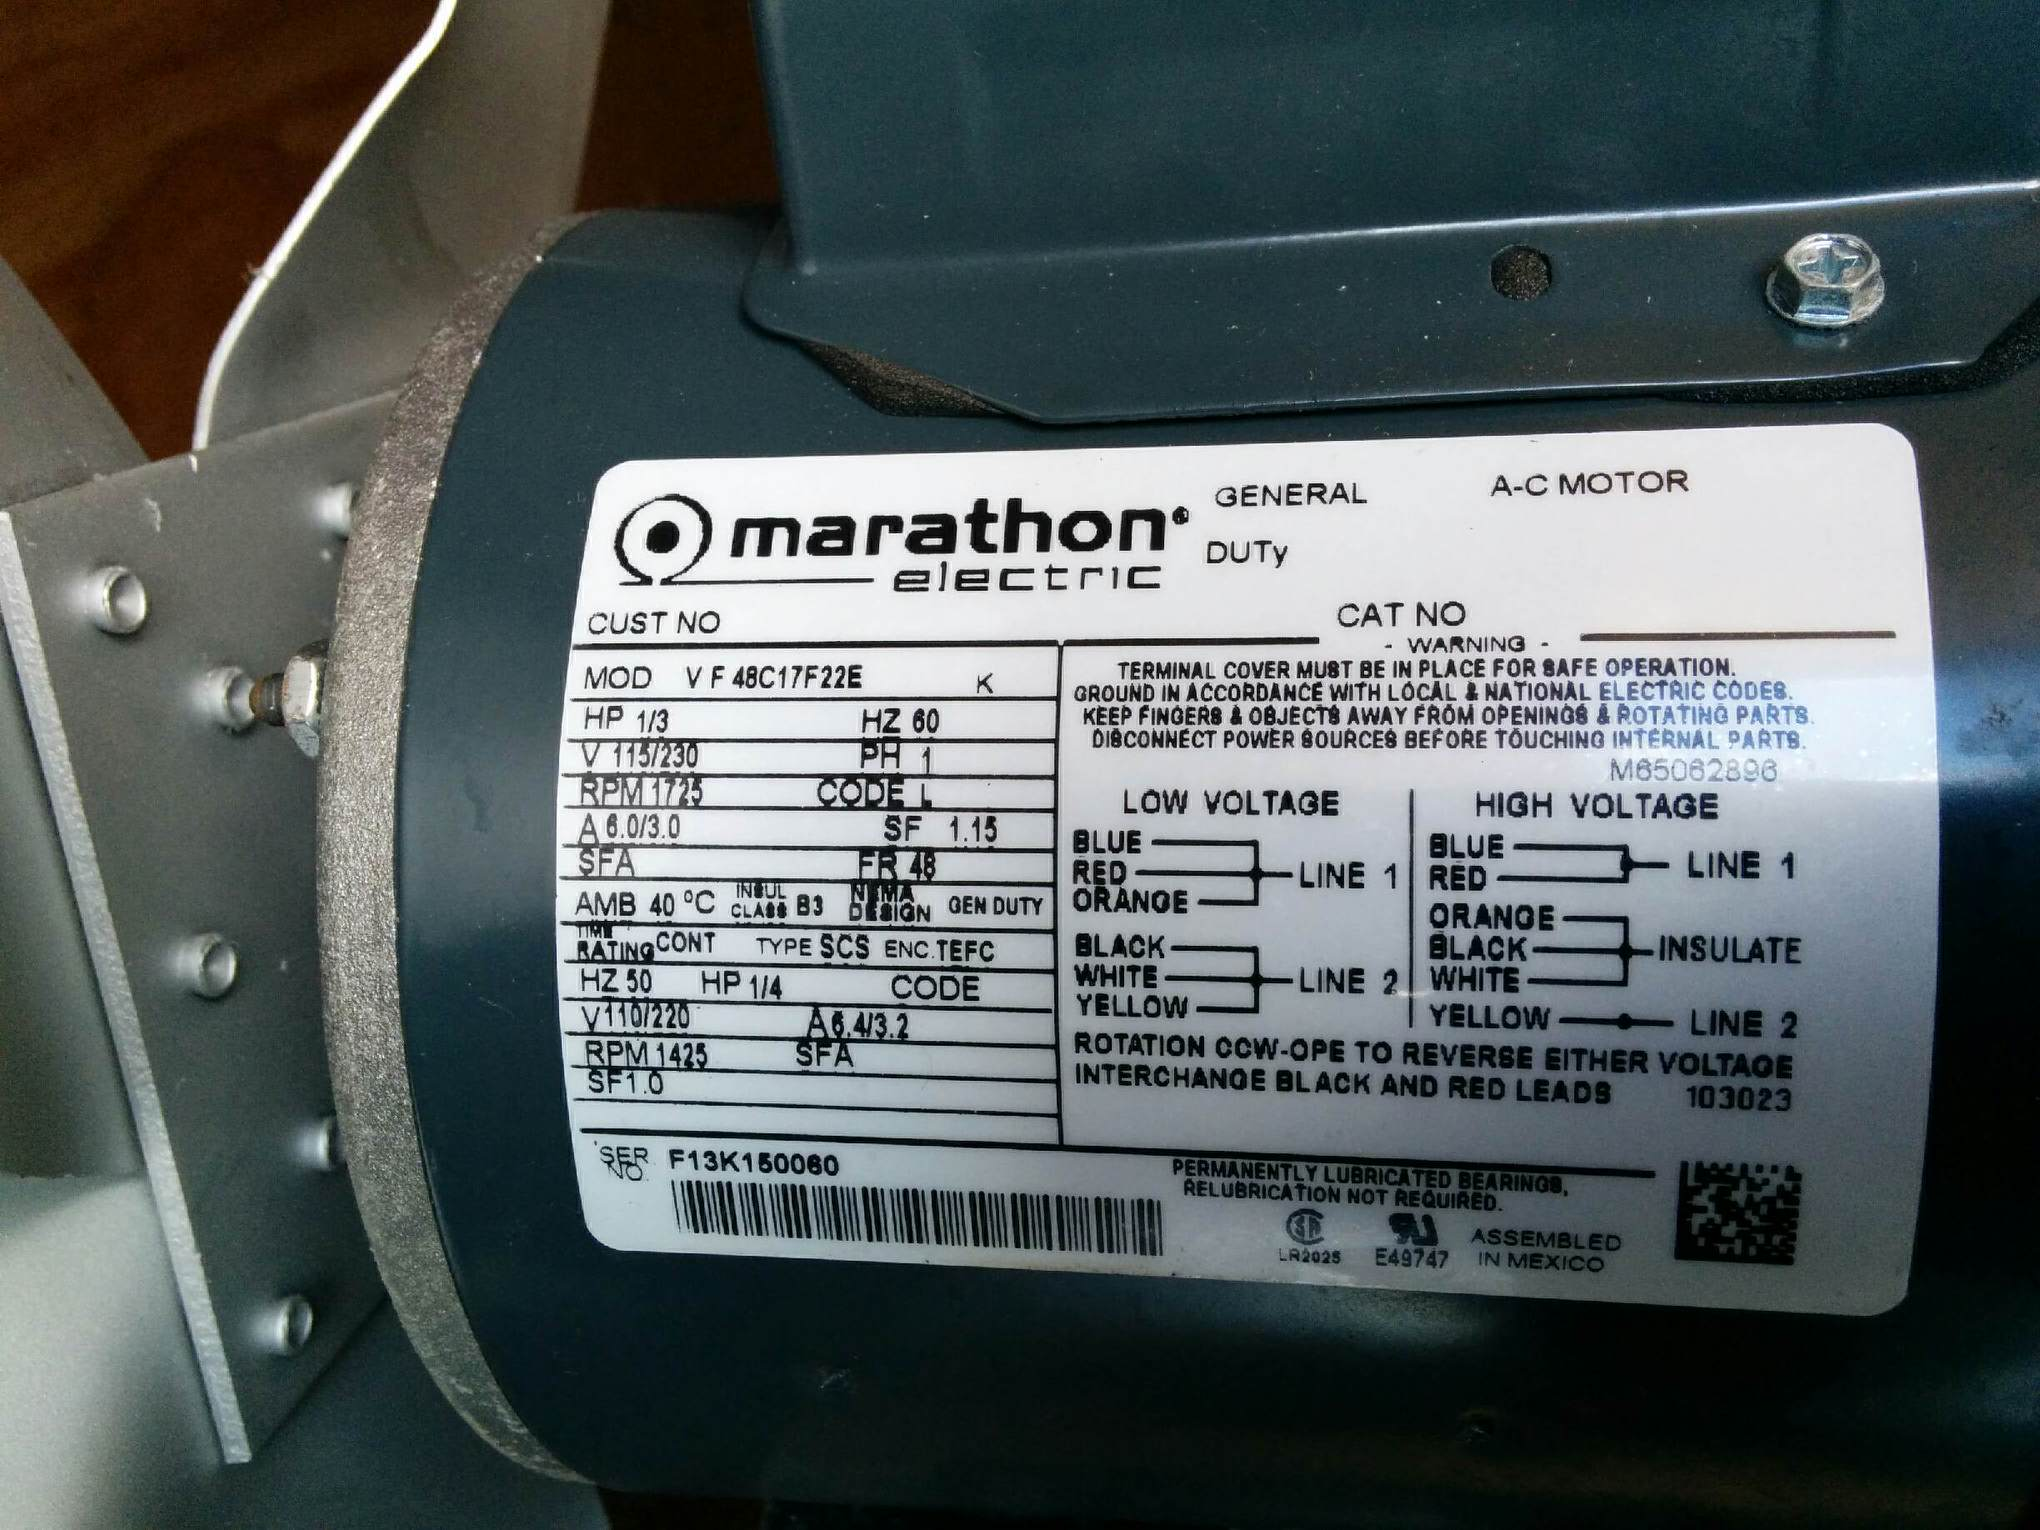 emerson electric motors wiring diagrams 3 phases em 1395  marathon electric 34 hp motor wiring diagram download diagram  electric 34 hp motor wiring diagram